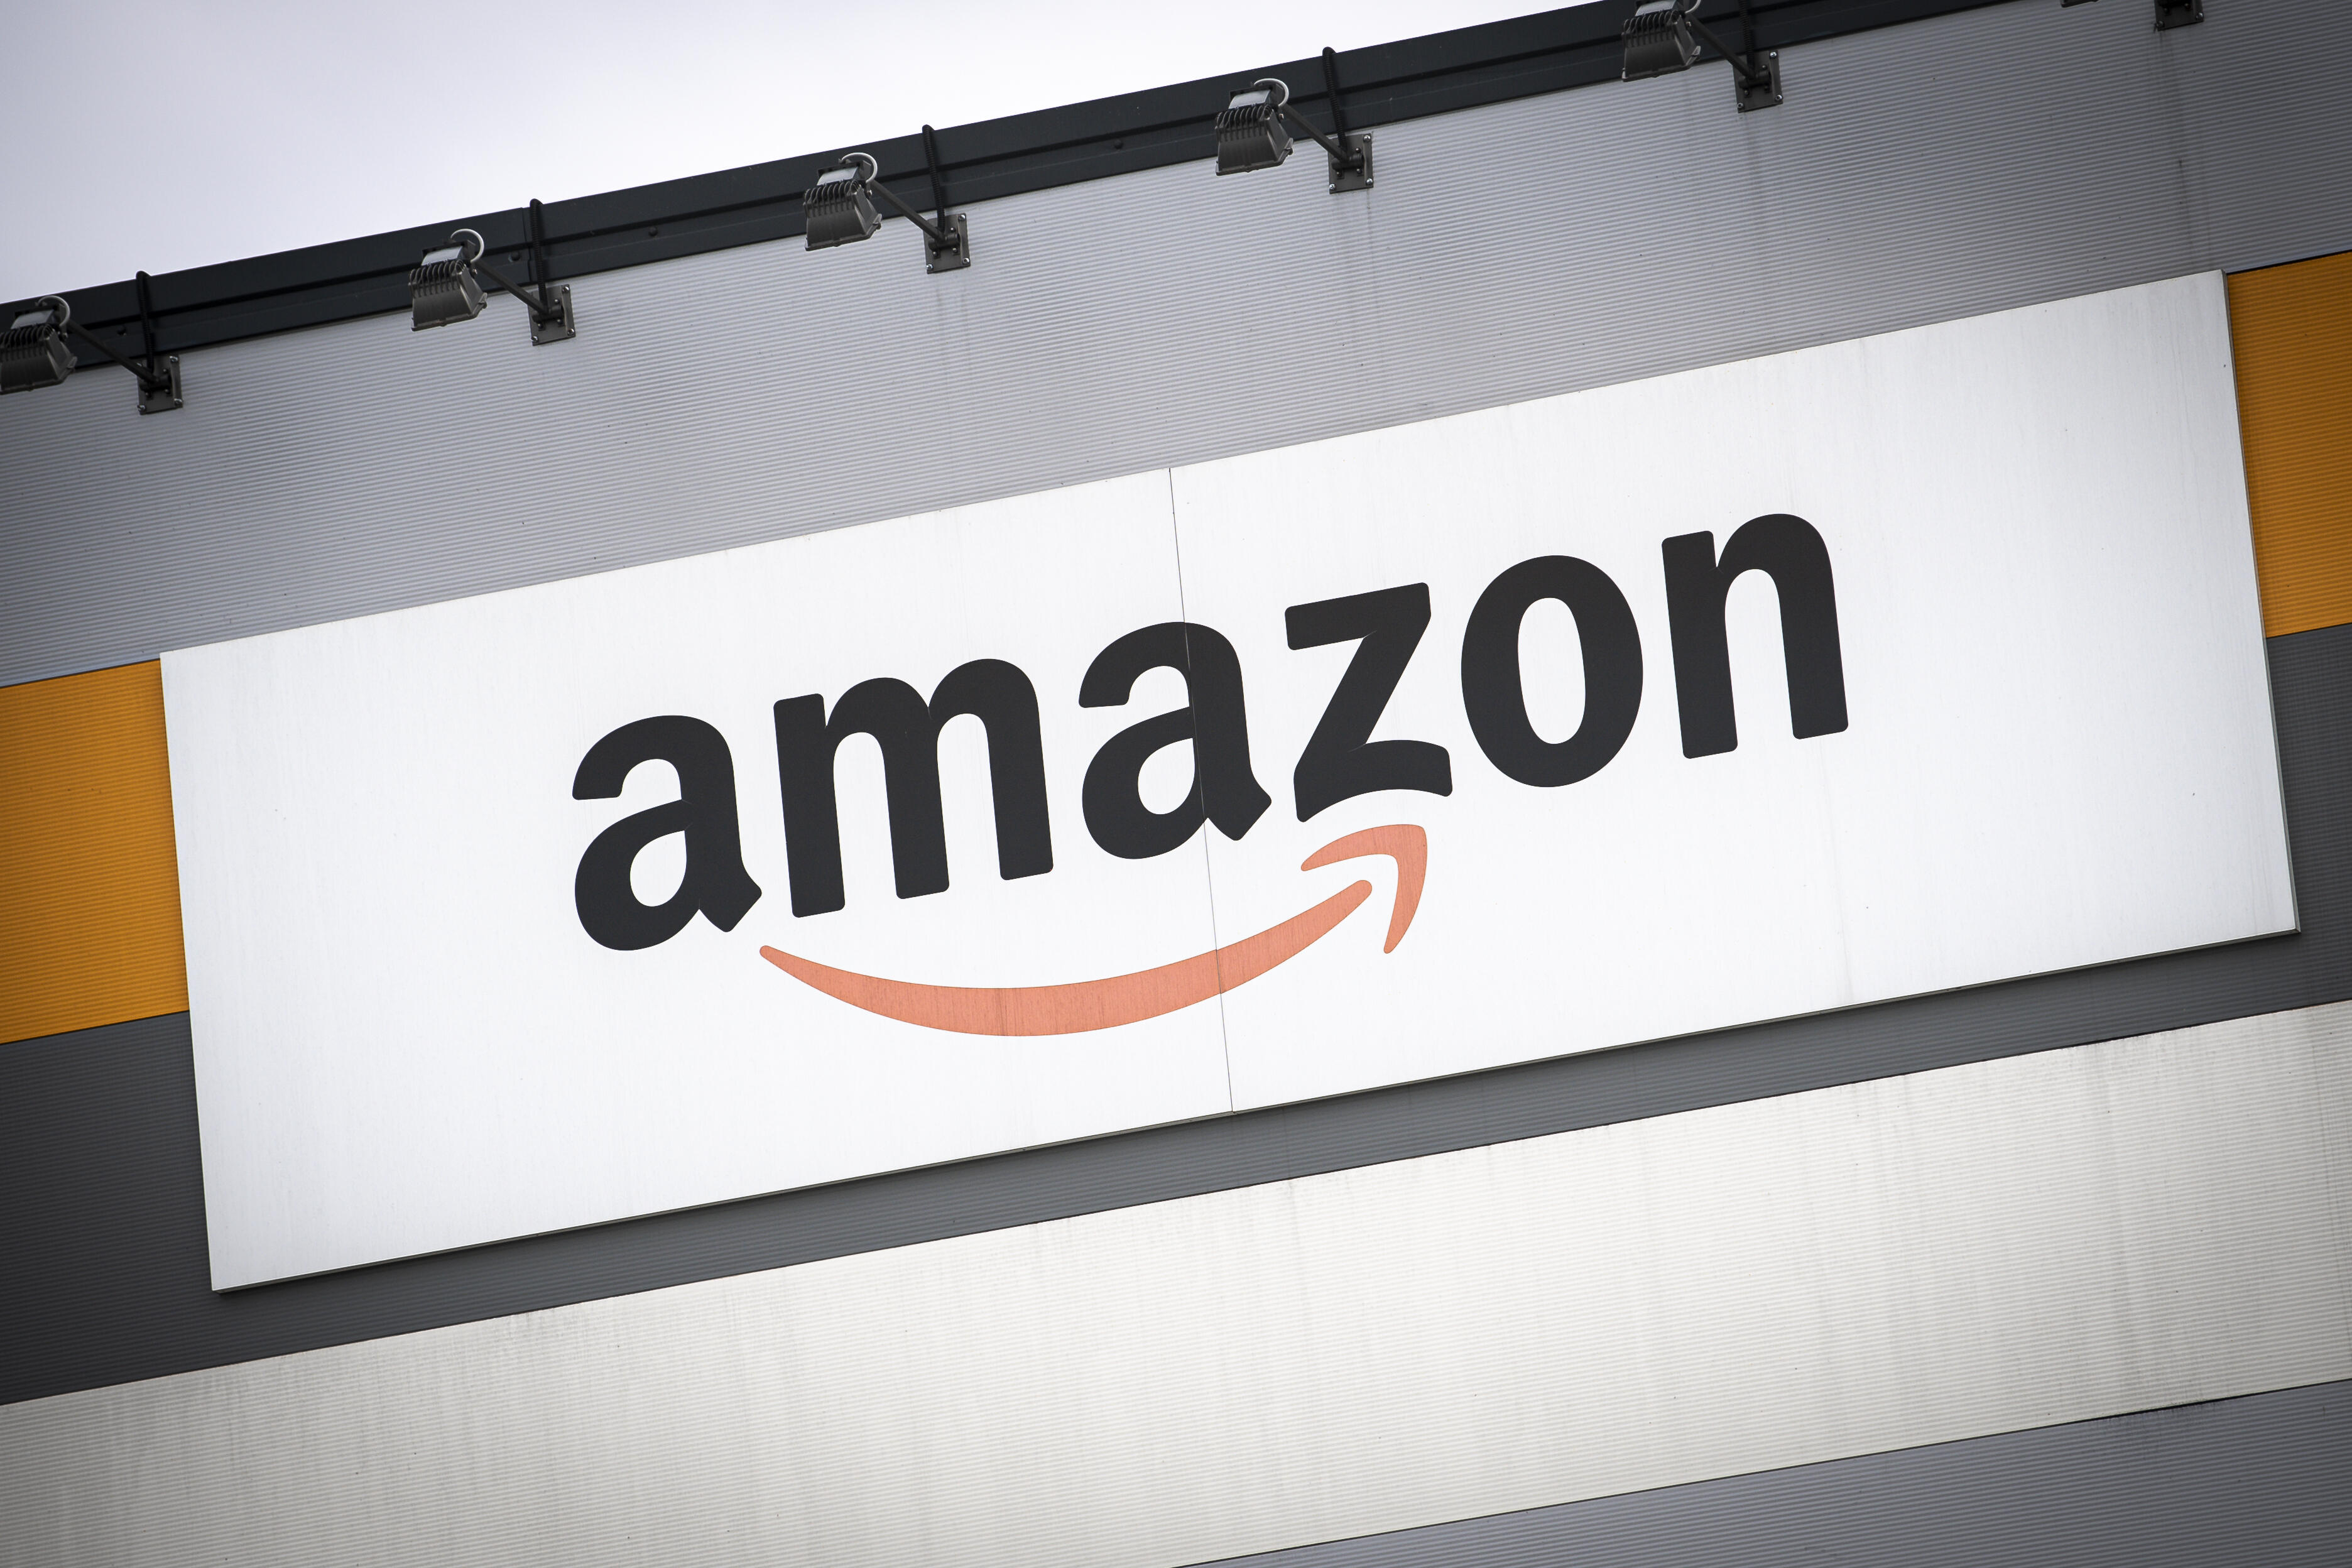 The outside of an Amazon warehouse with the company logo prominently displayed.